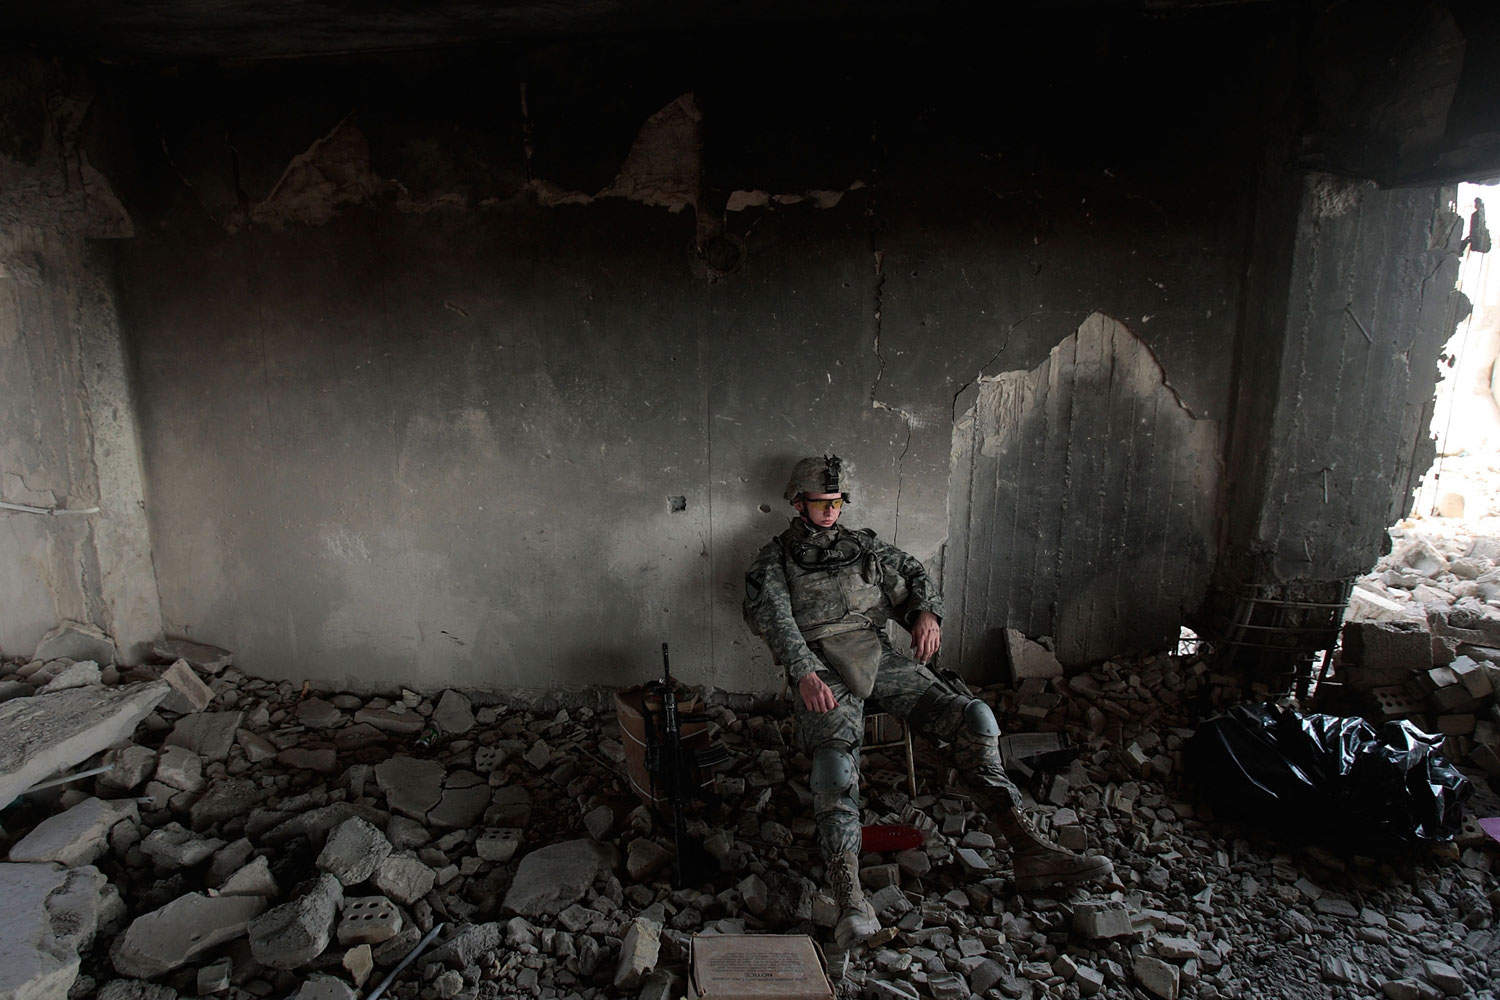 Baghdad, Iraq, July 13, 2007:  Pft. Daniel Sims of Clemson, South Carolina of the 1st Battalion, 5th Cavalry Regiment of the U.S. Army sits during watch duties in a partially destroyed building that's being converted to an Army field post in the tense Amariyah neighborhood of Baghdad, Iraq.